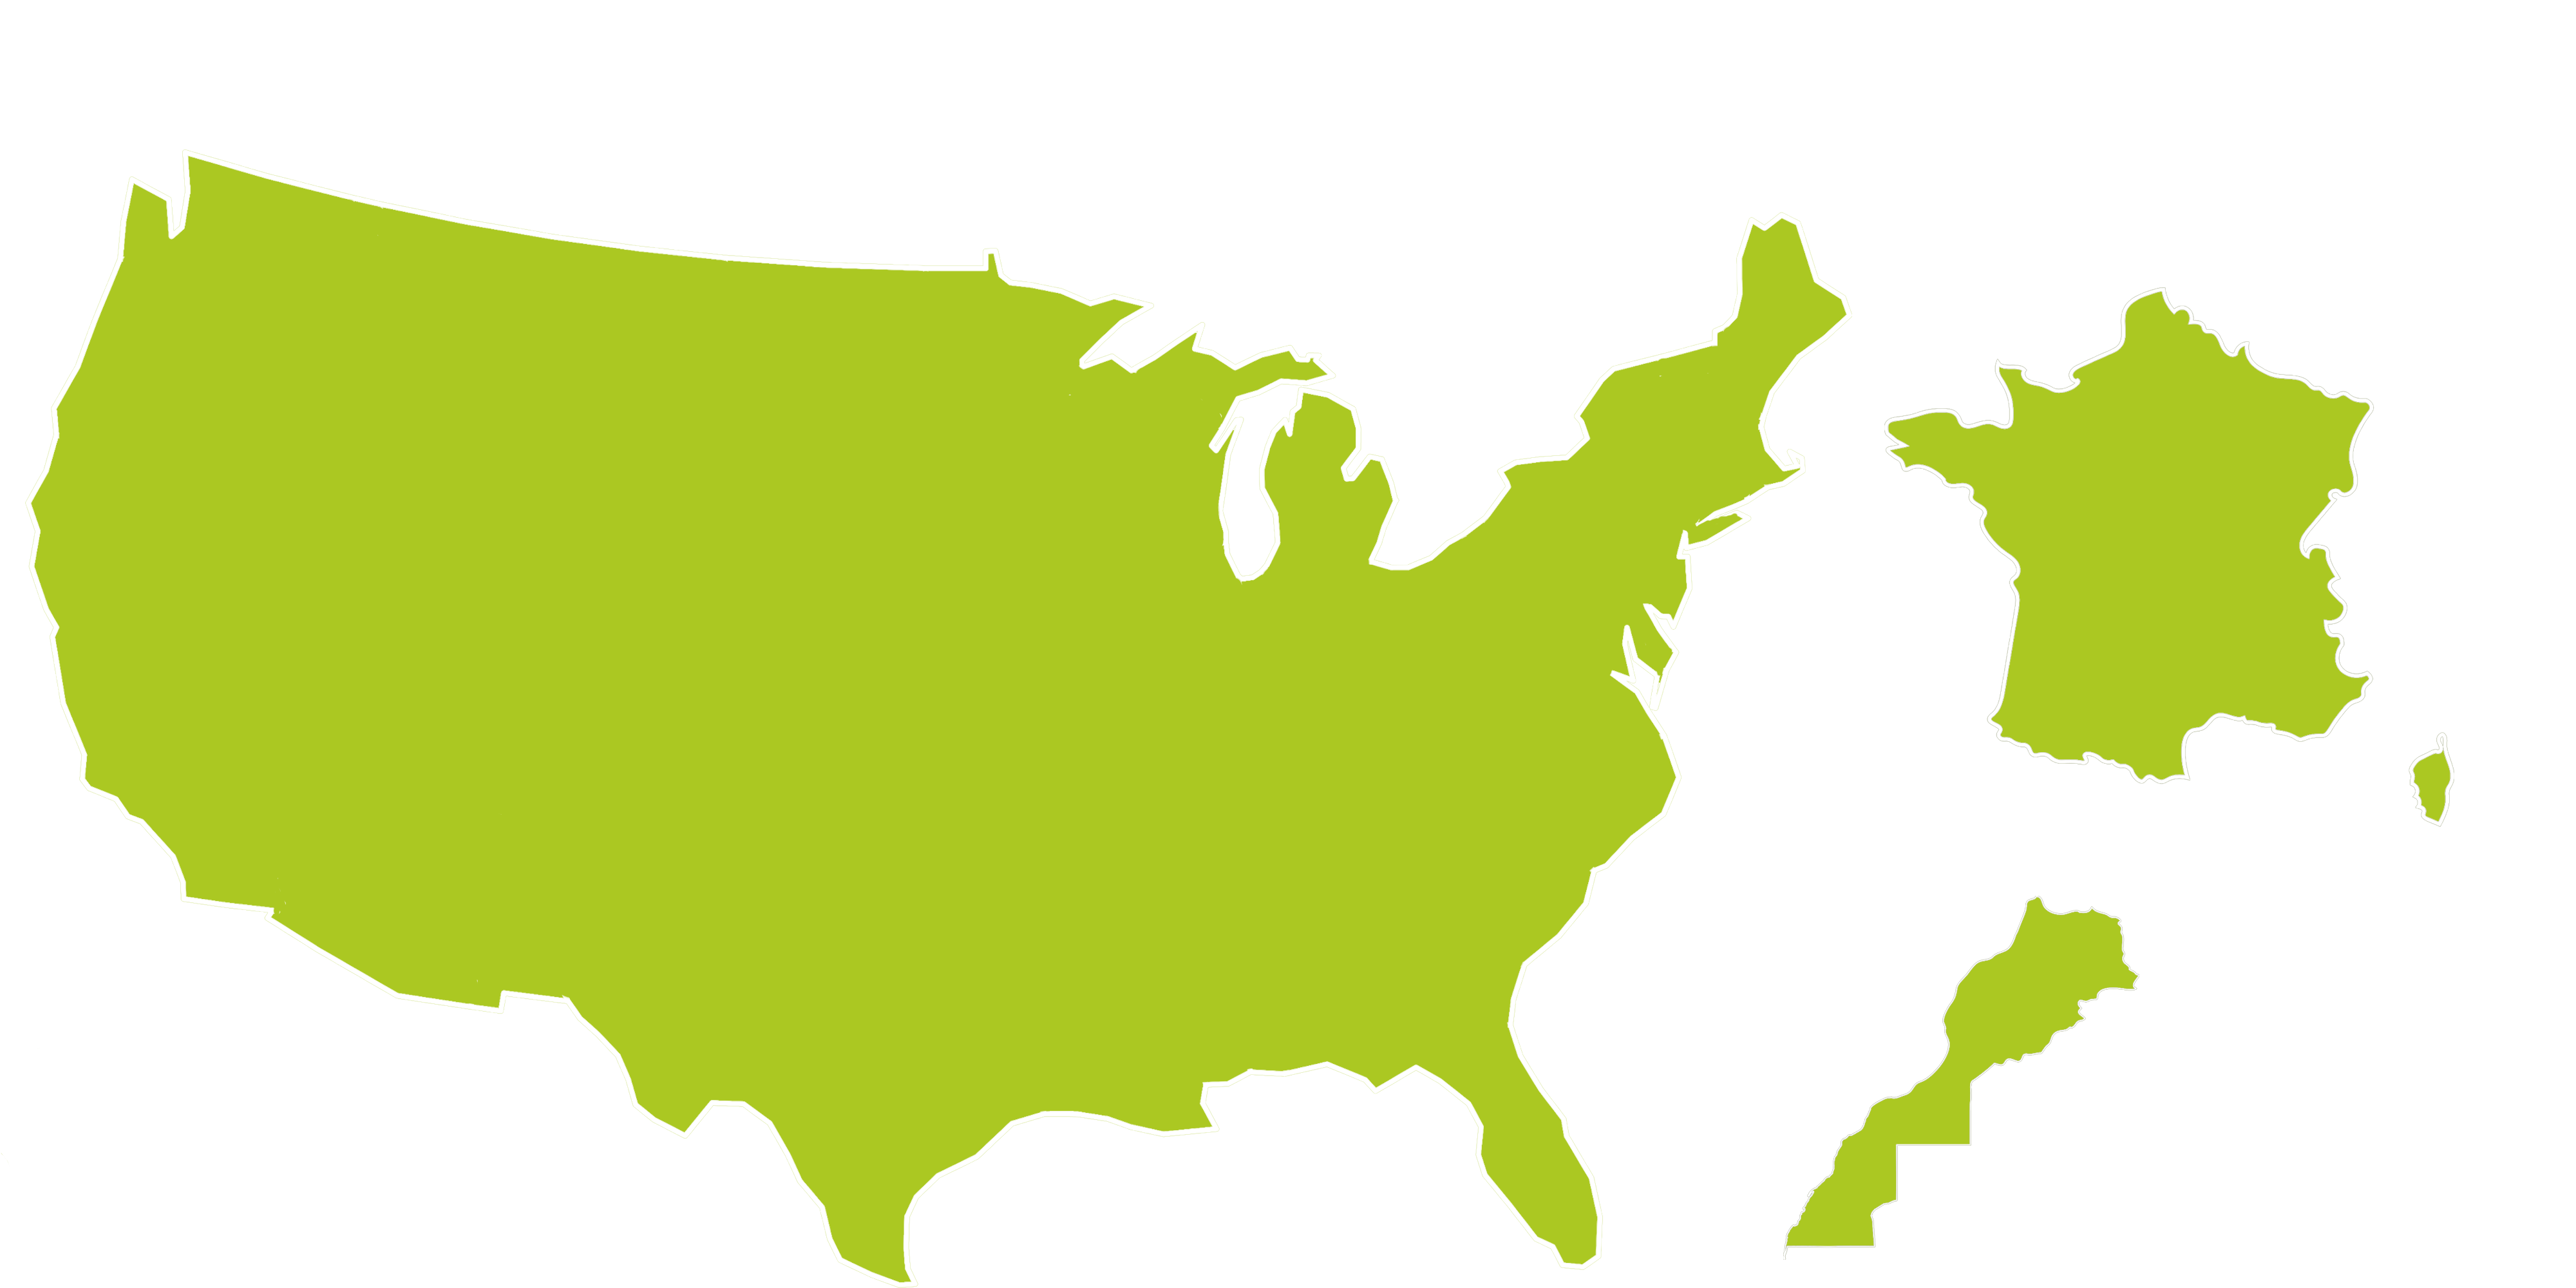 Image of the Map of the United States, France and Morocco, indicating locations where Cathy Waterman jewelry is sold.